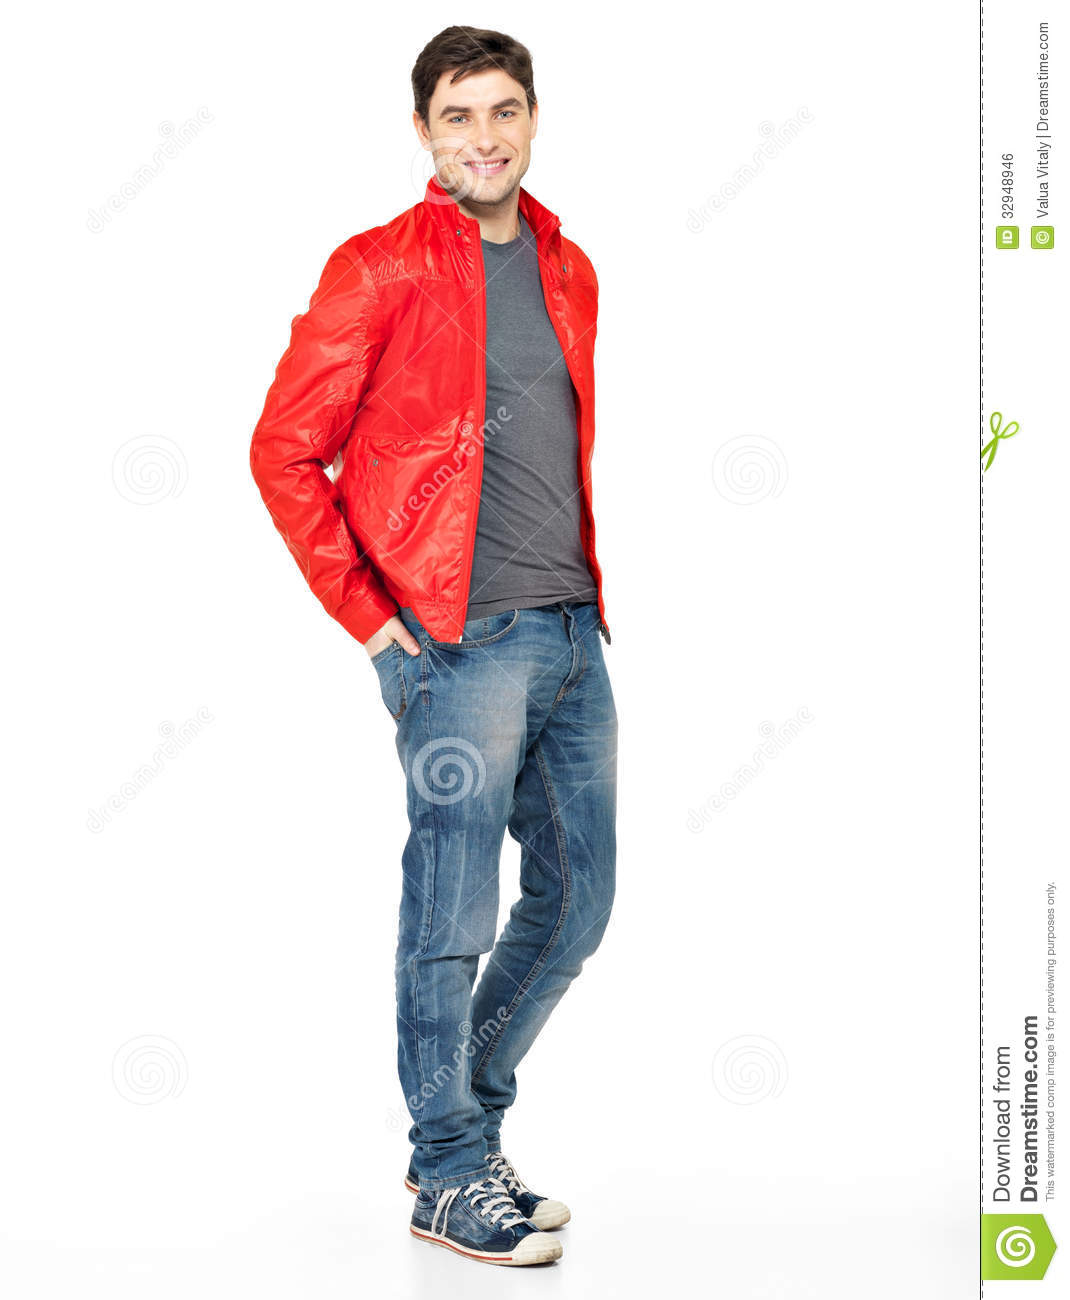 Smiling Happy Man In Red Jacket, Blue Jeans And Gymshoes. Royalty ...